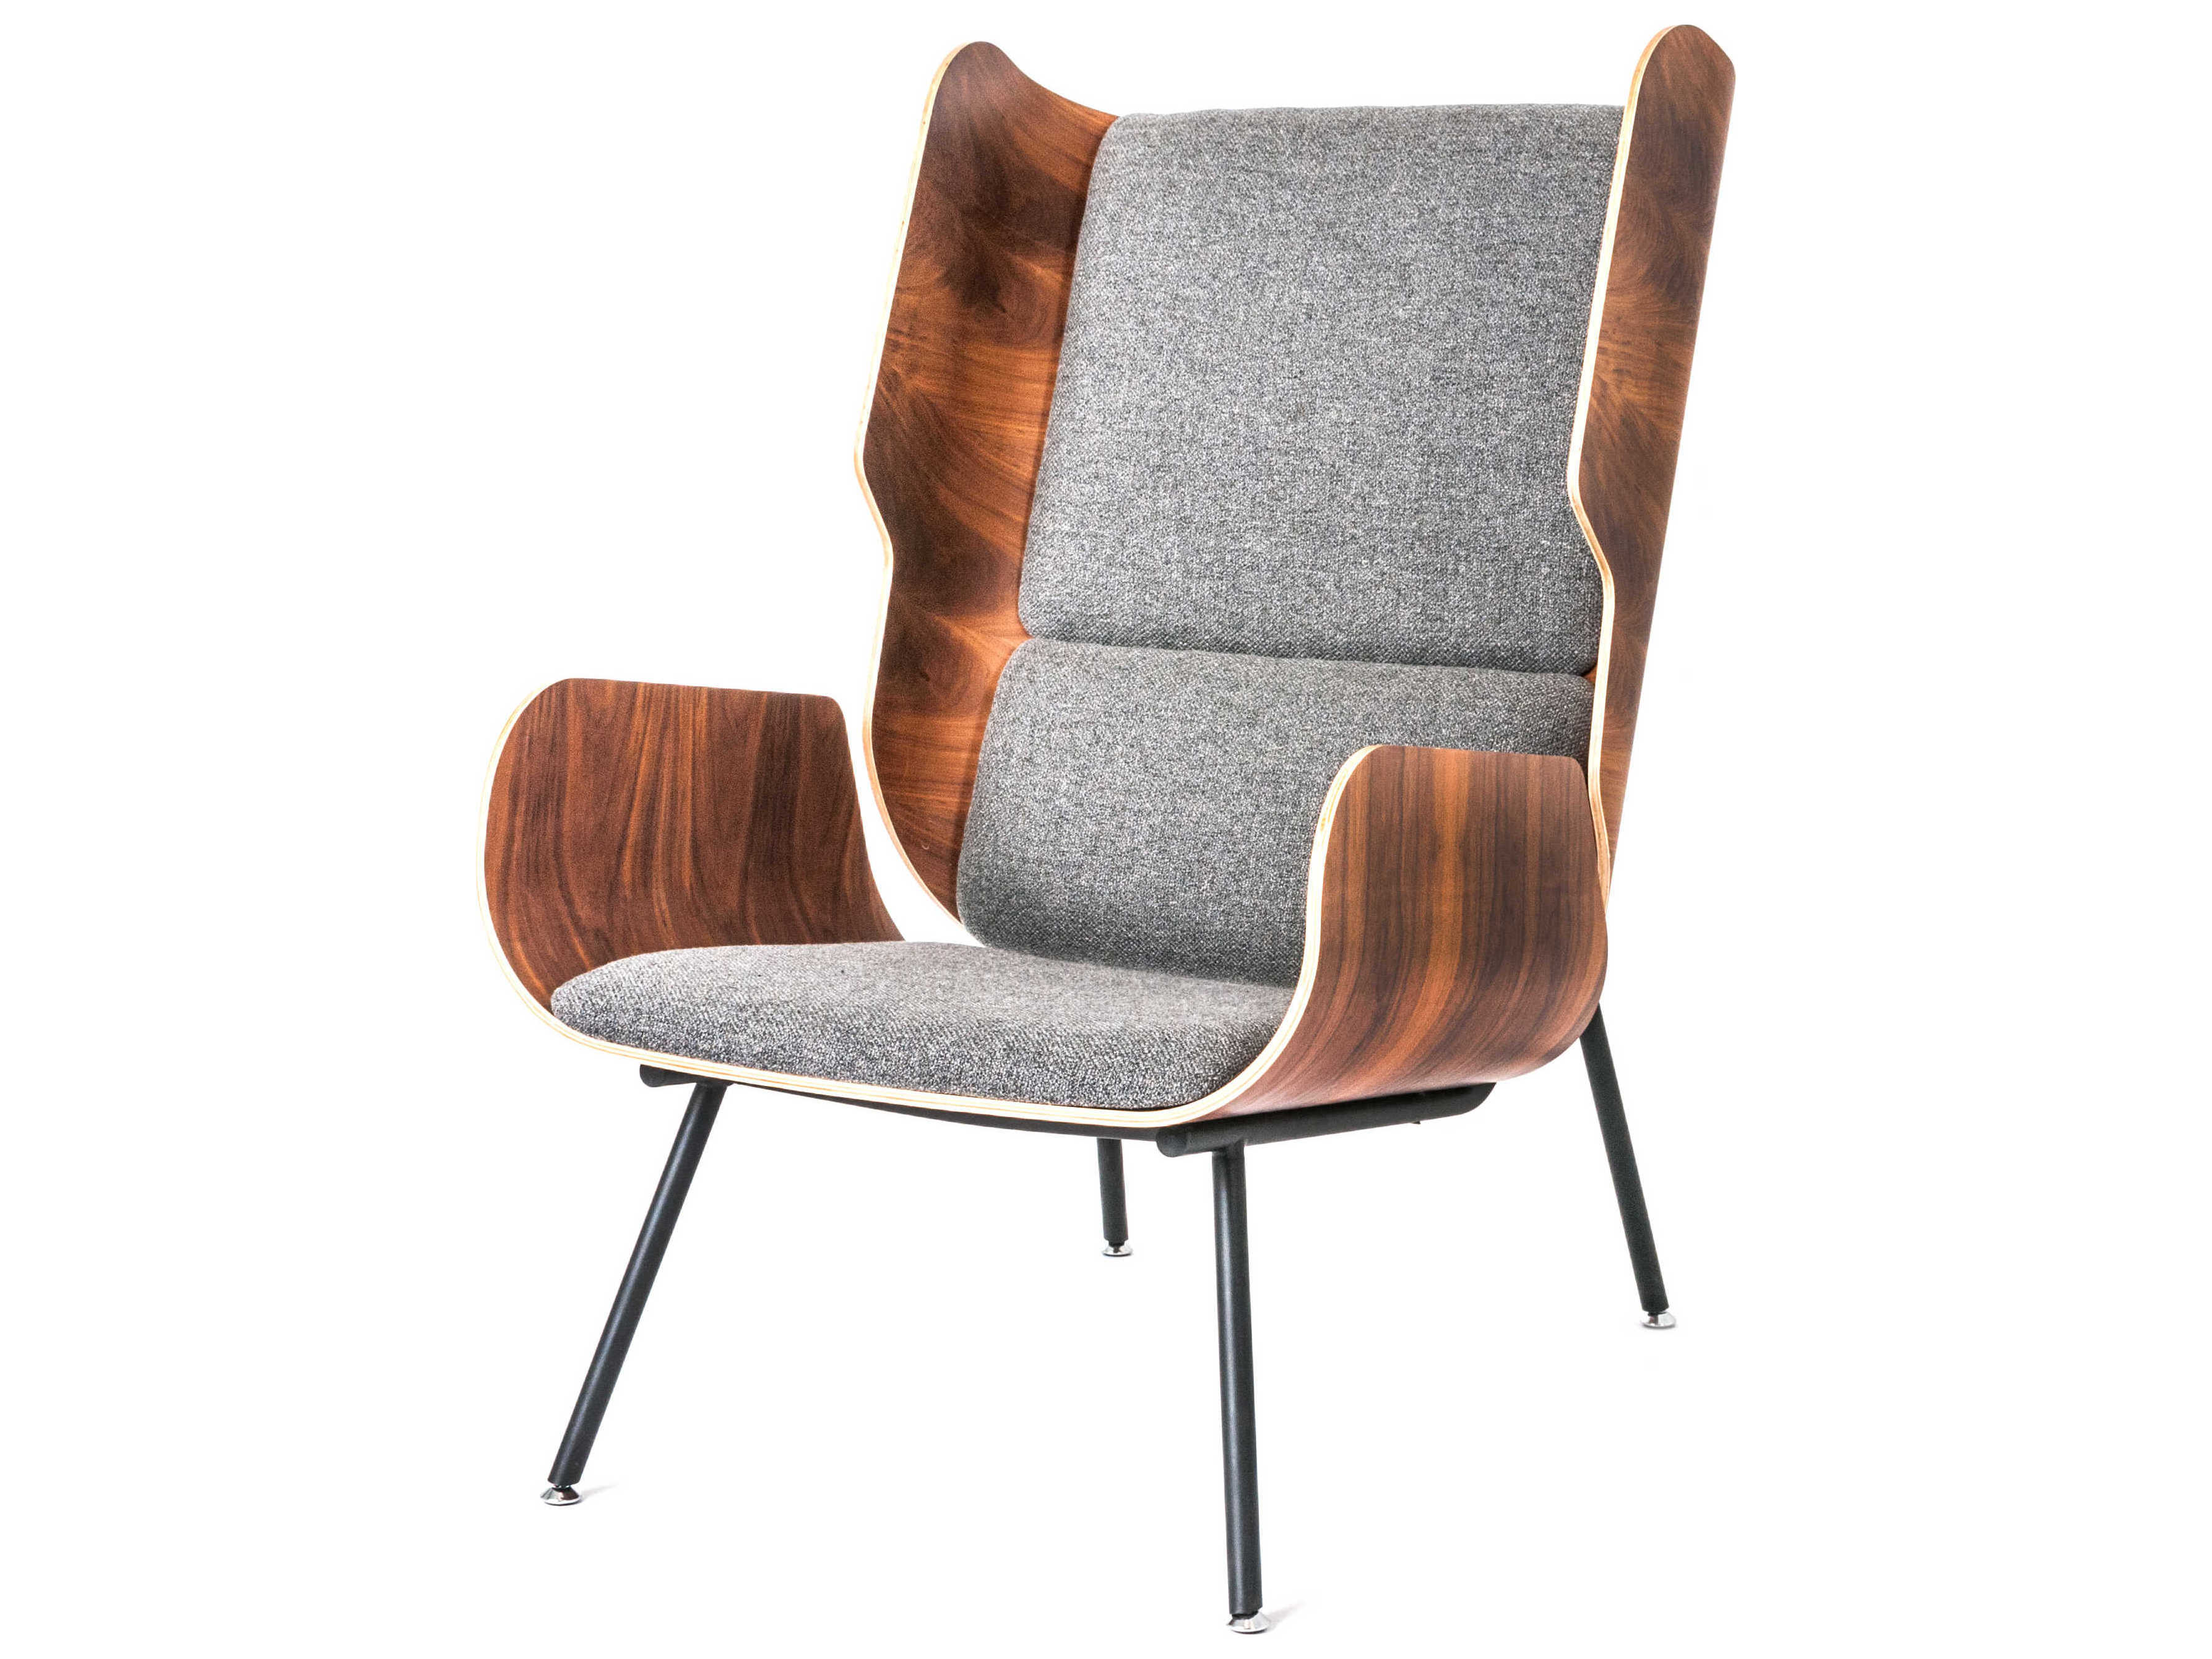 Astounding Gus Modern Elk Accent Chair Pabps2019 Chair Design Images Pabps2019Com